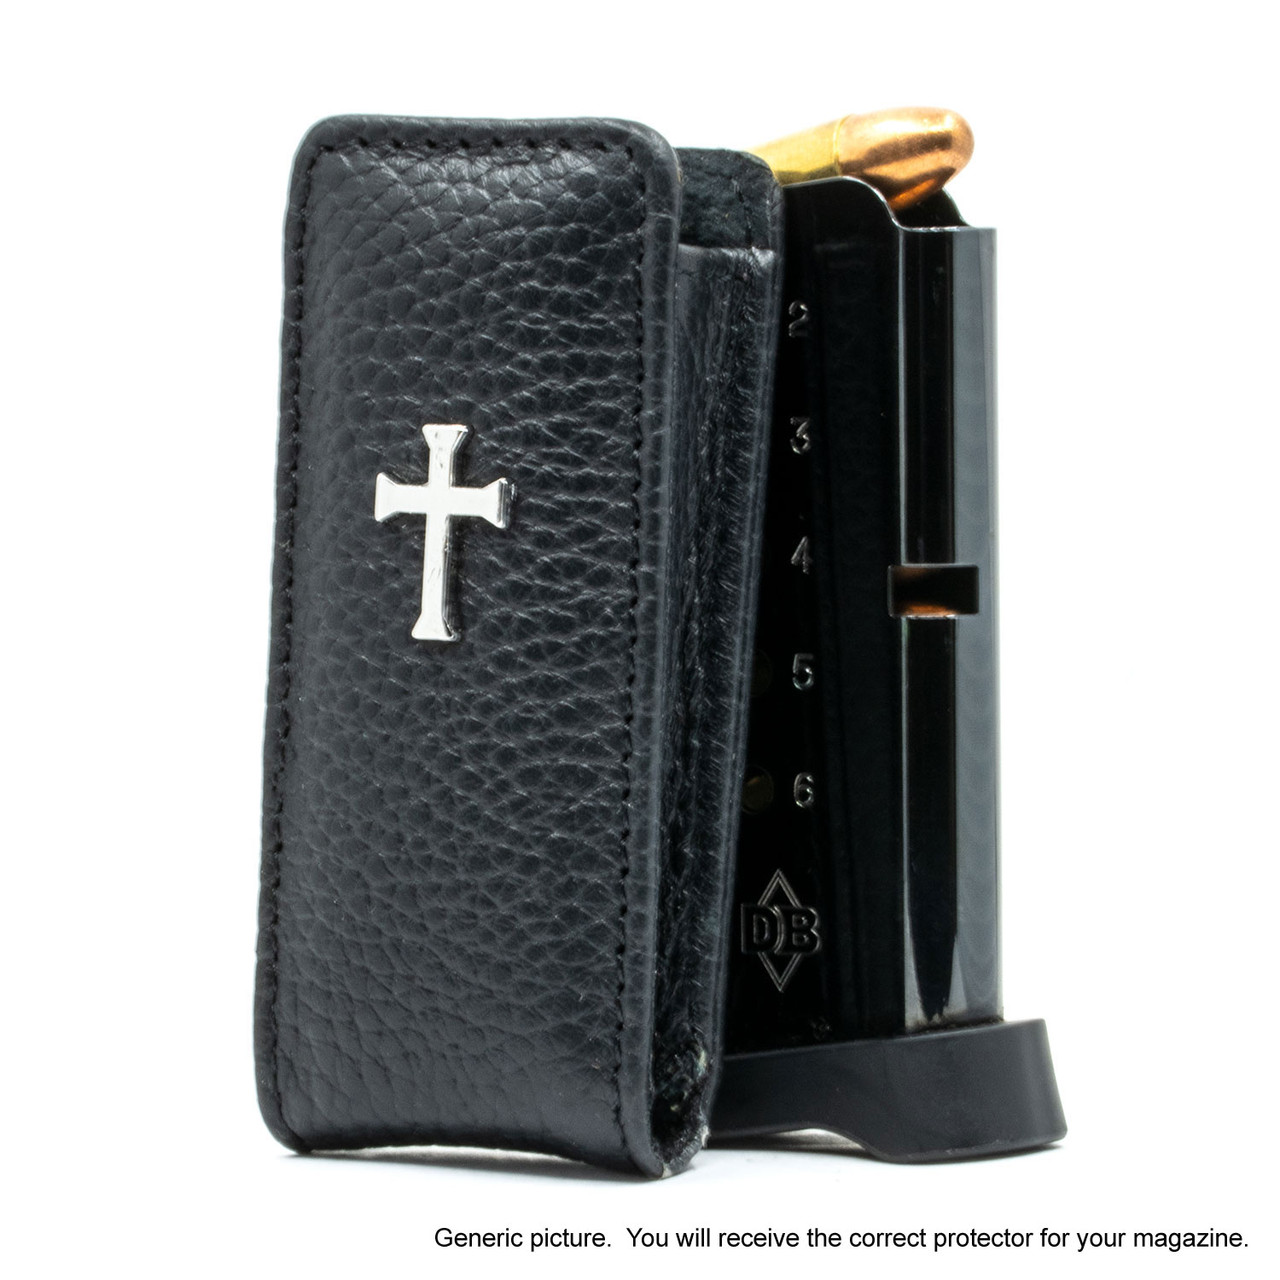 Colt Mustang Pocketlite Black Leather Cross Magazine Pocket Protector